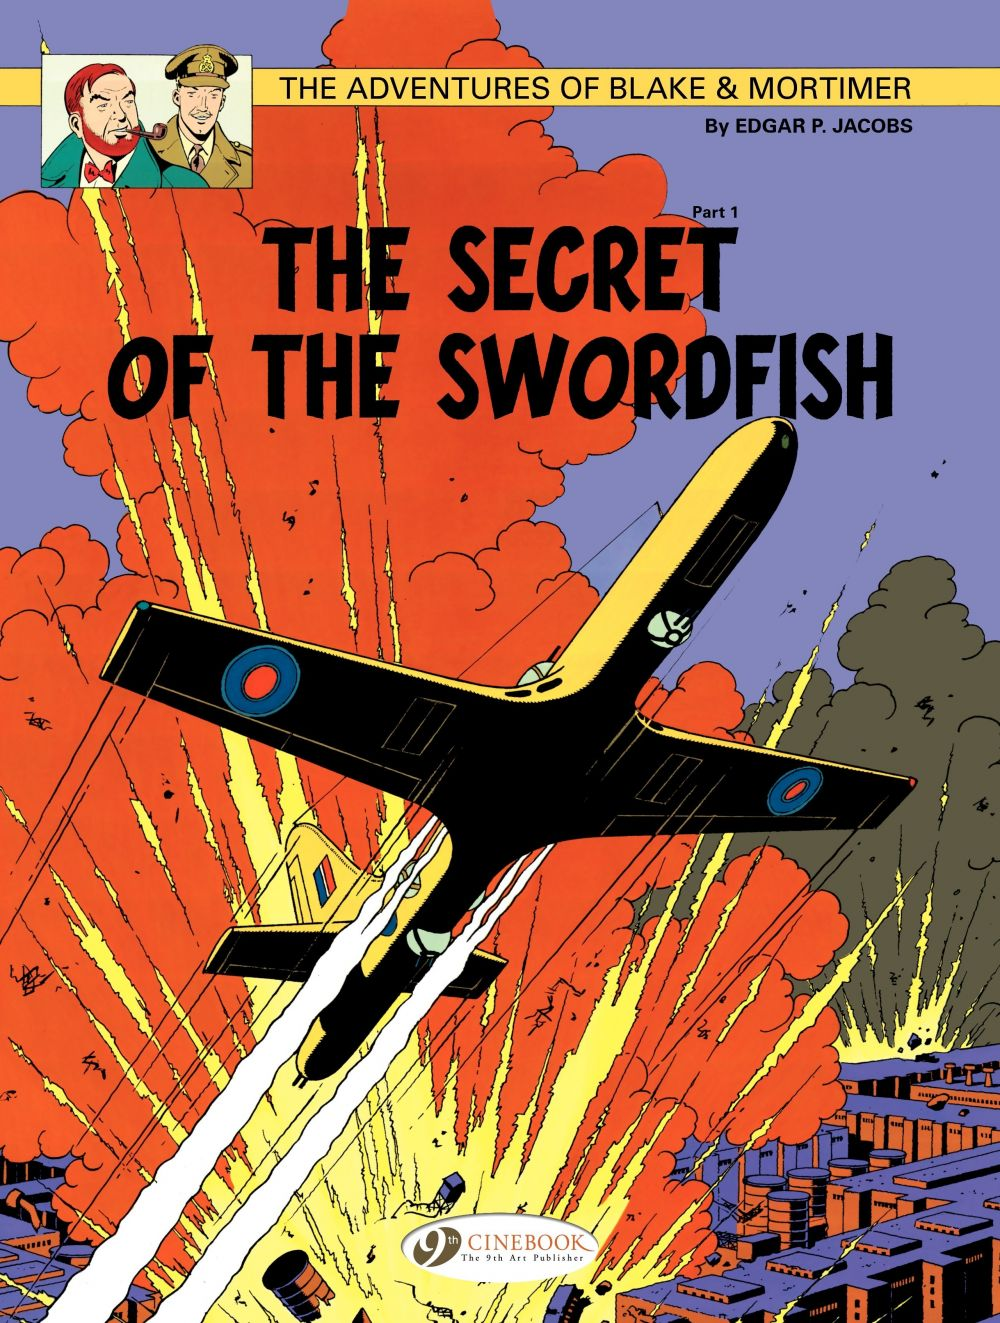 Blake & Mortimer - Volume 15 -The secret of the swordfish